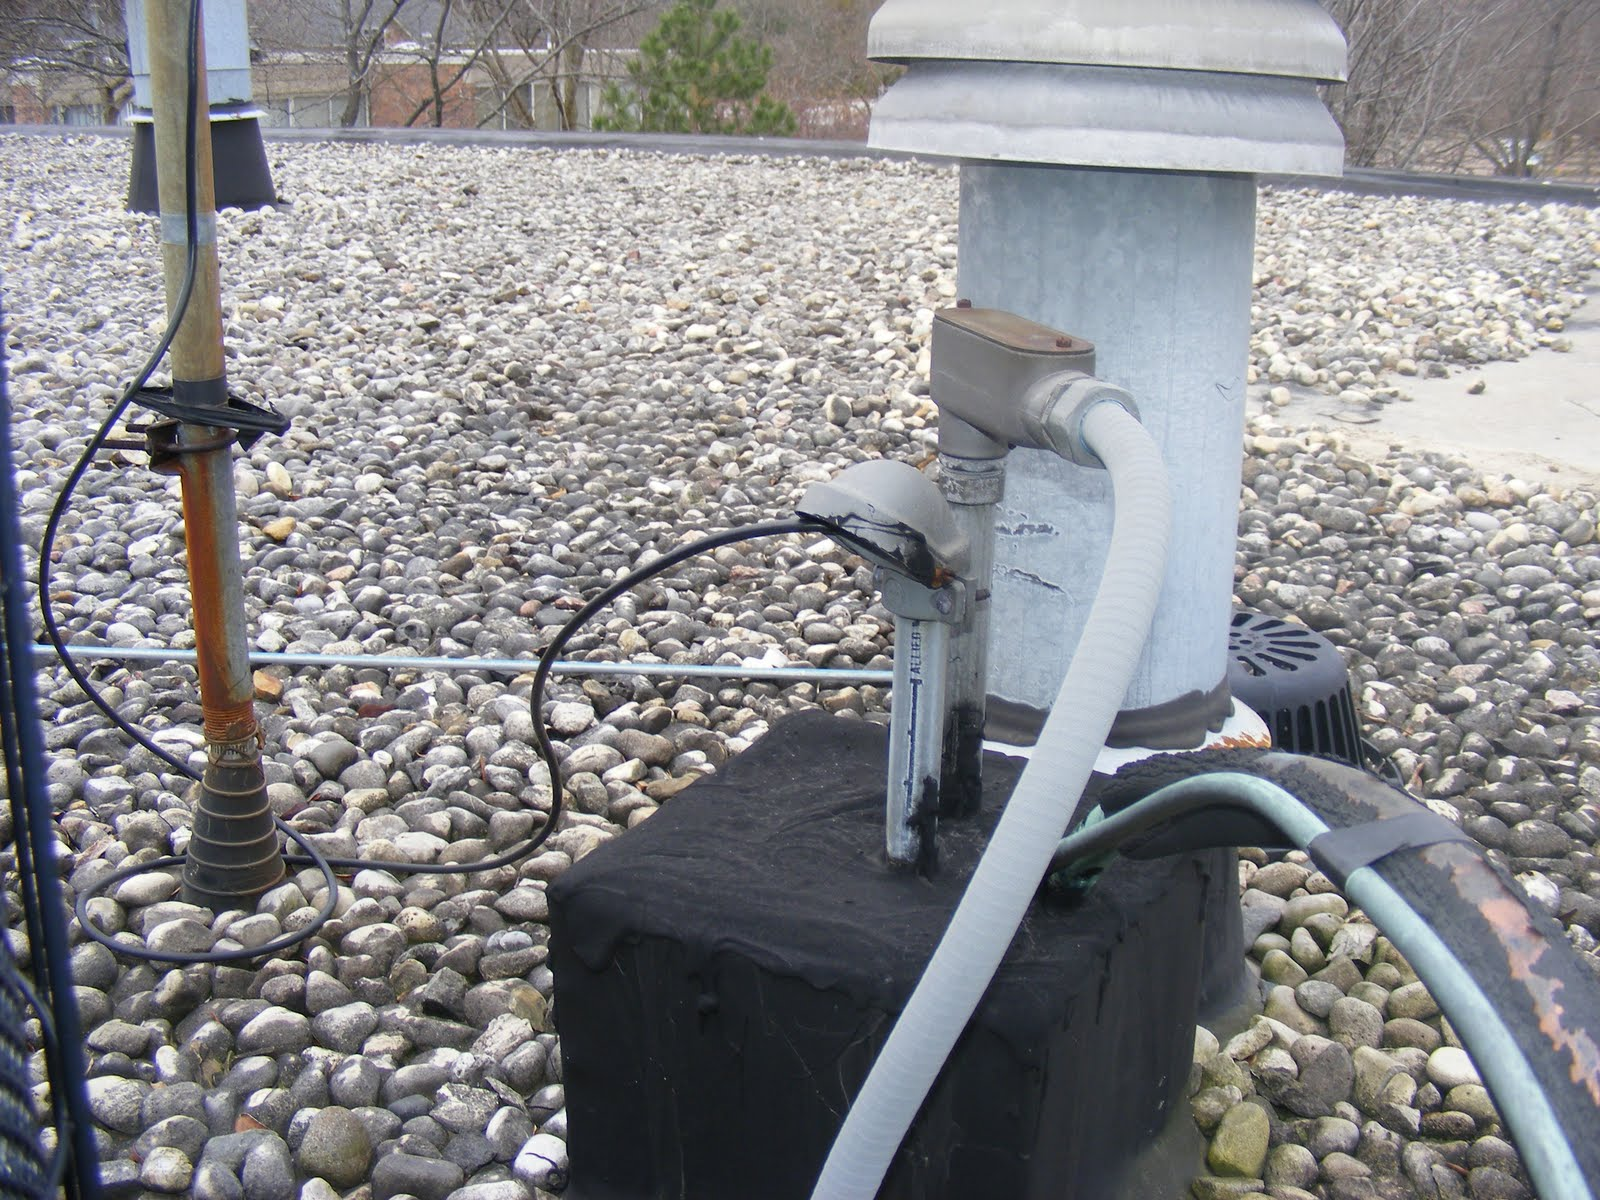 Roofer S View Water Down The Electrical Conduit And On